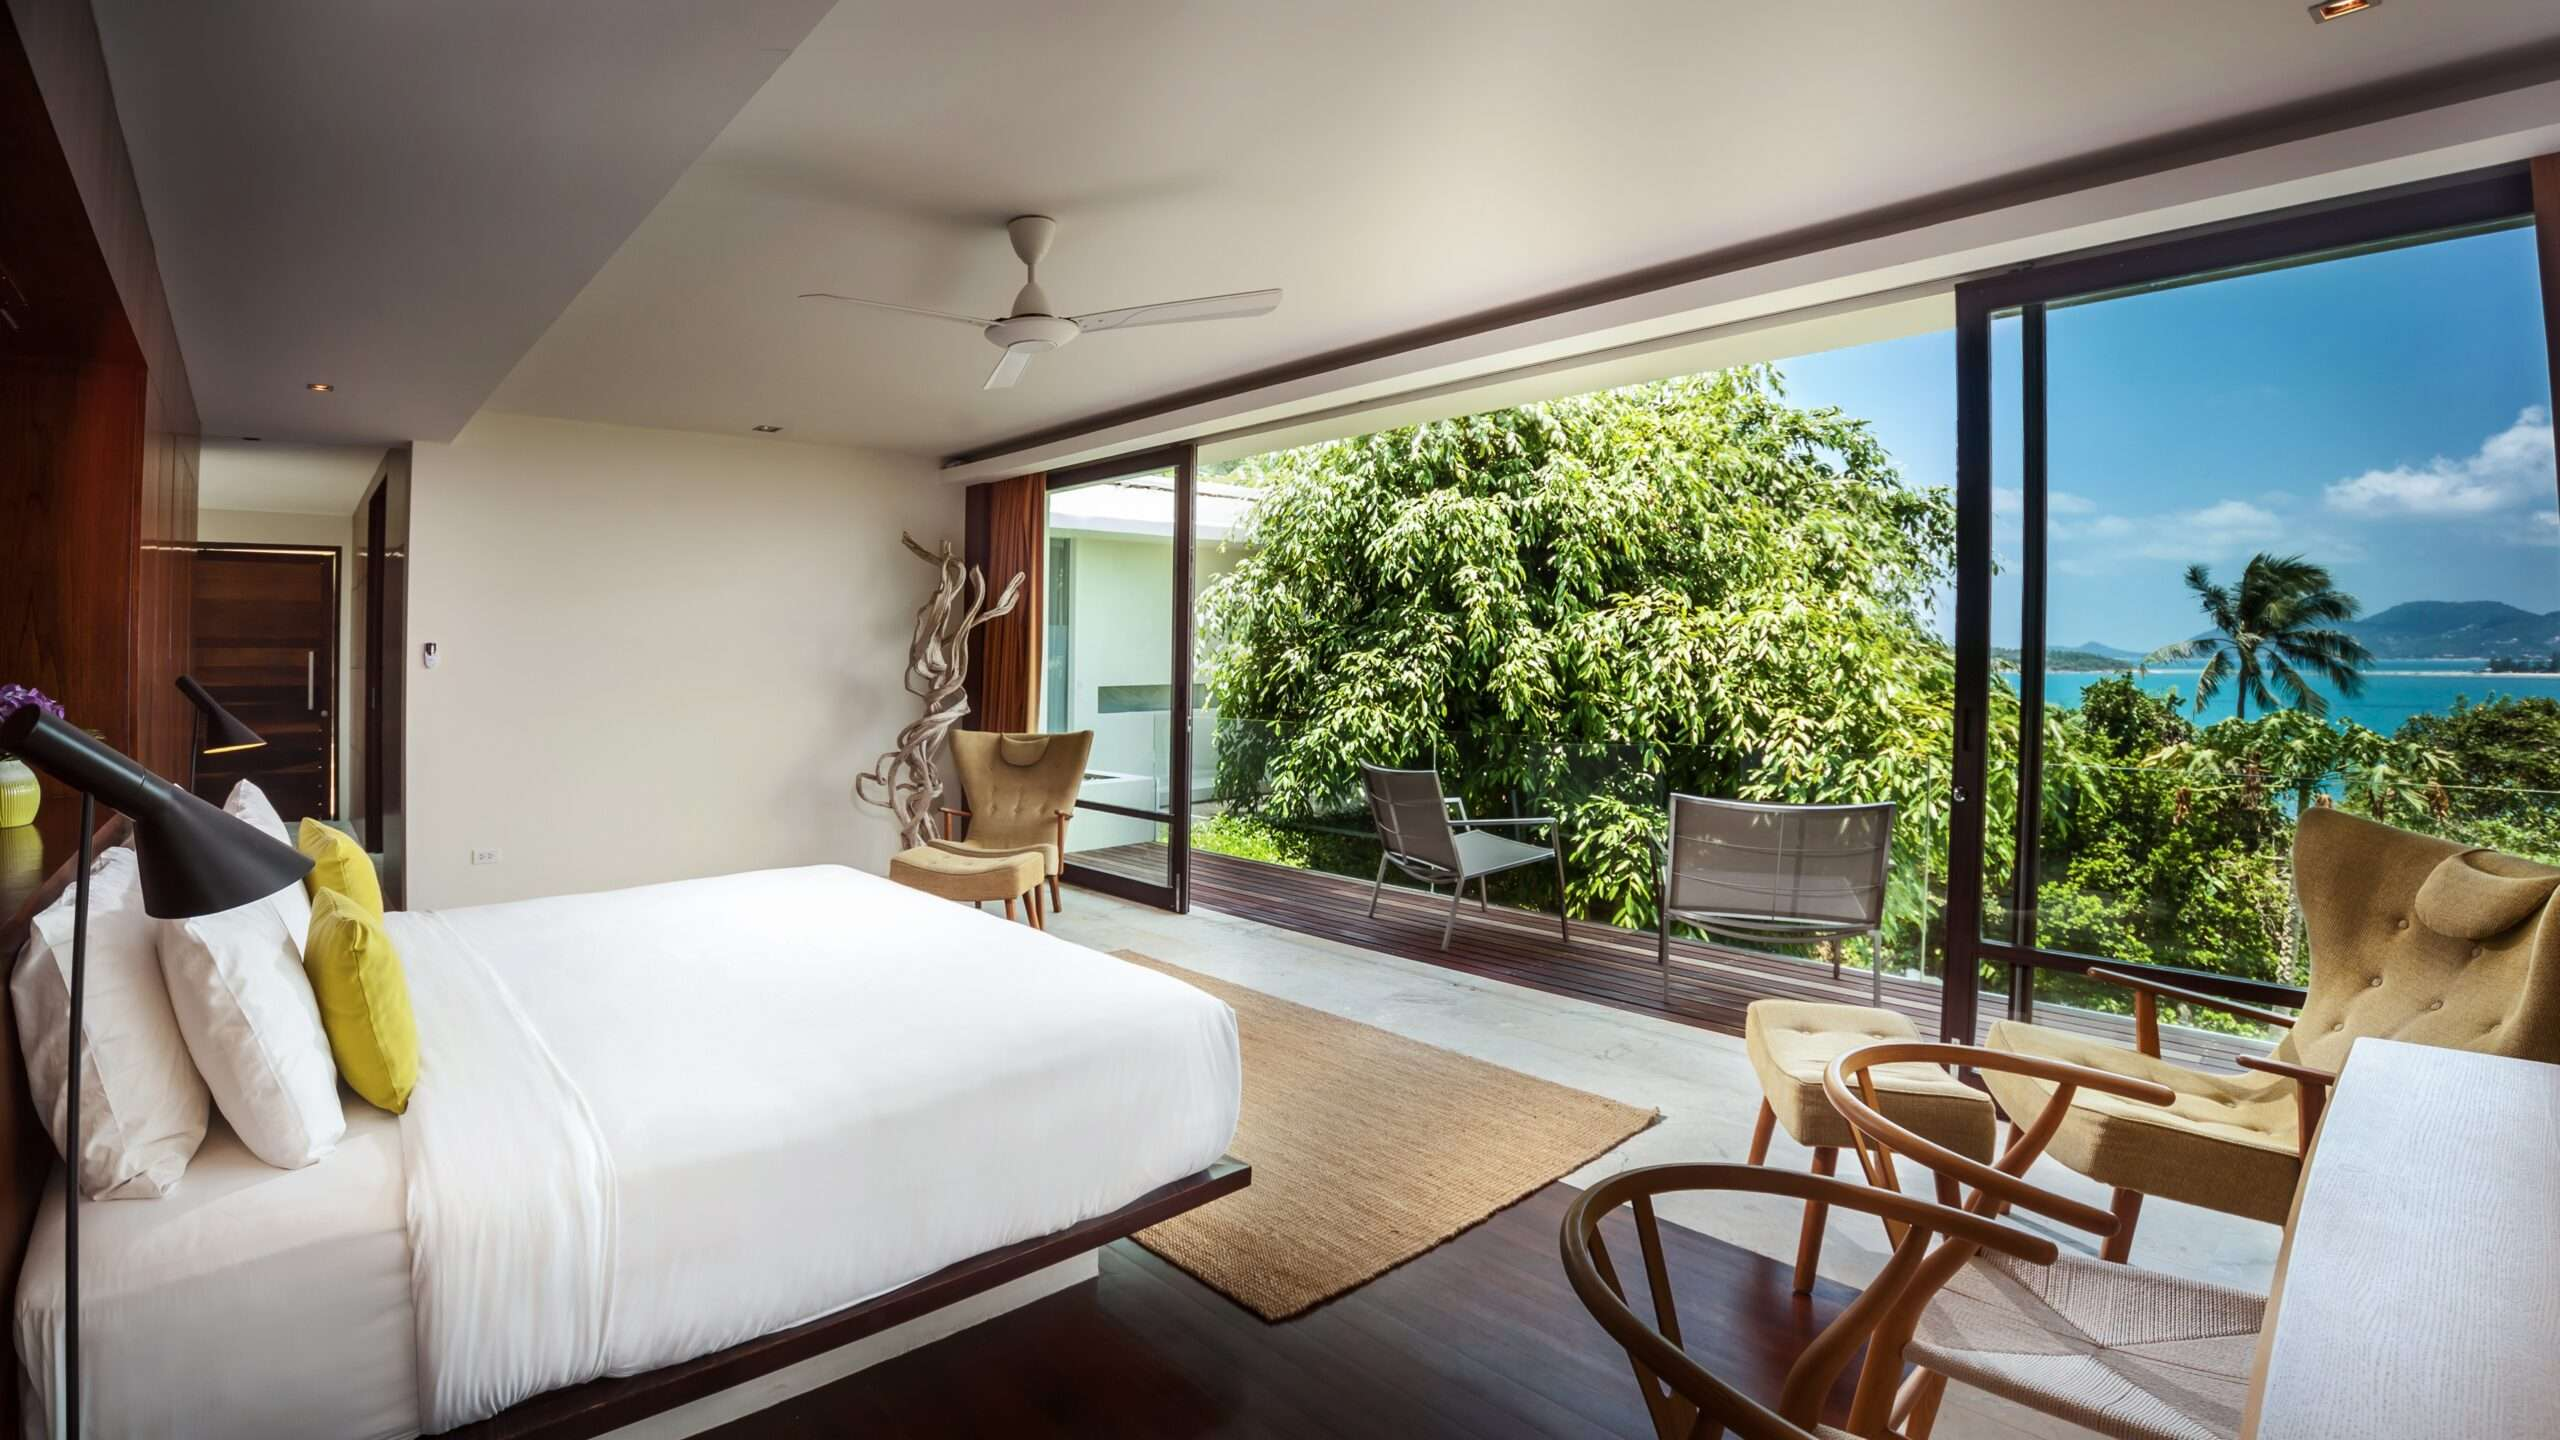 expansive sea views from the bedroom at Villa Hin Koh Samui